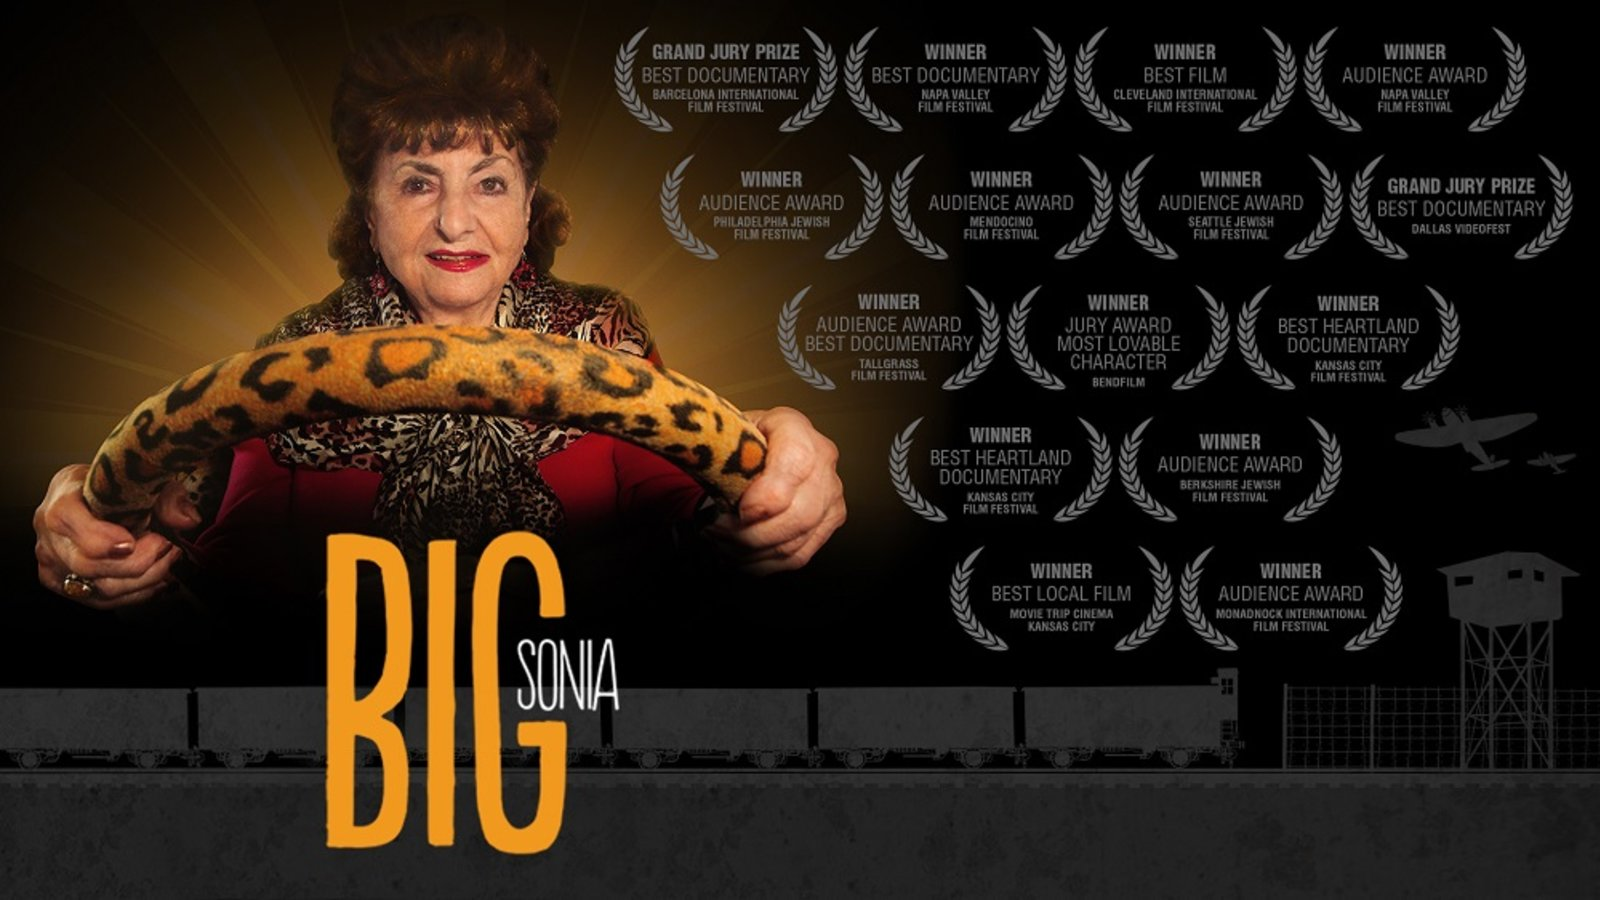 Big Sonia - A Holocaust Survivor Faces a Difficult Decision